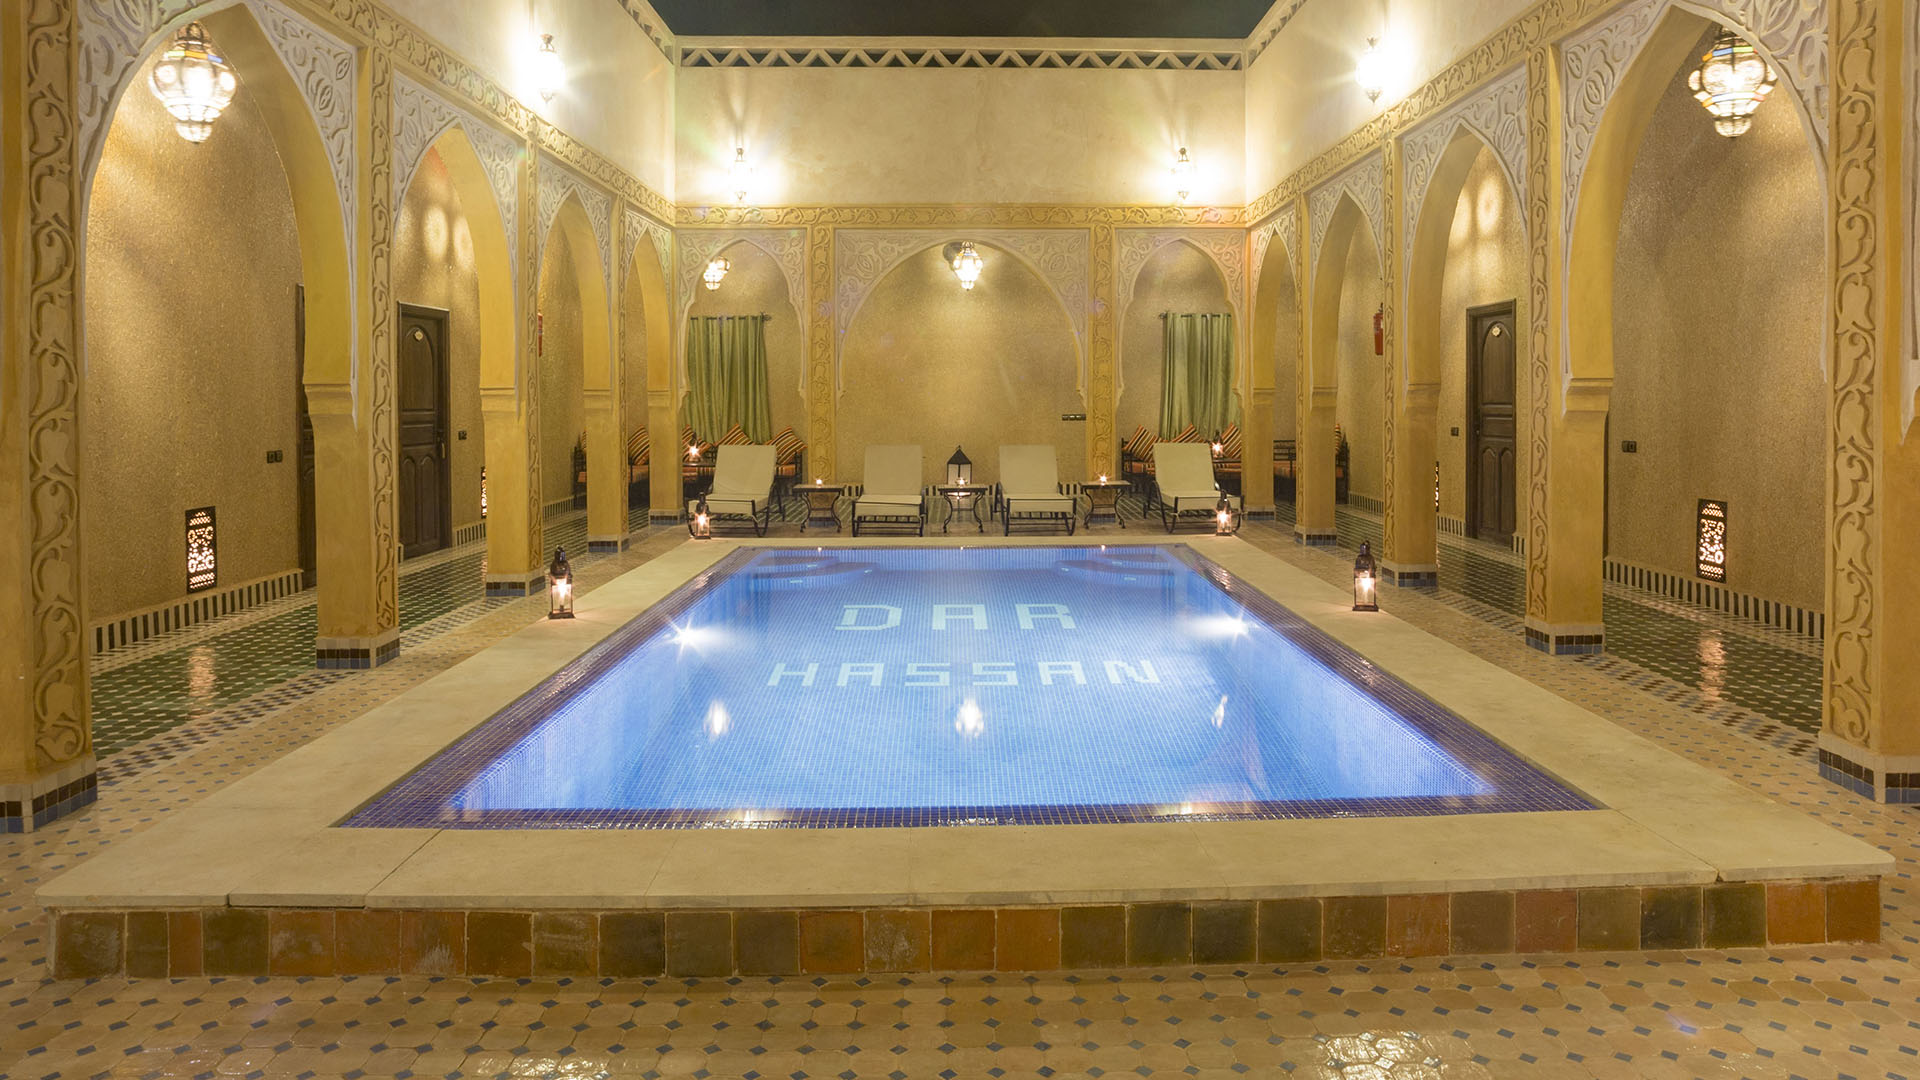 About Riad Dar Hassan swimming pool - photo Ezyê Moleda all rights reserved